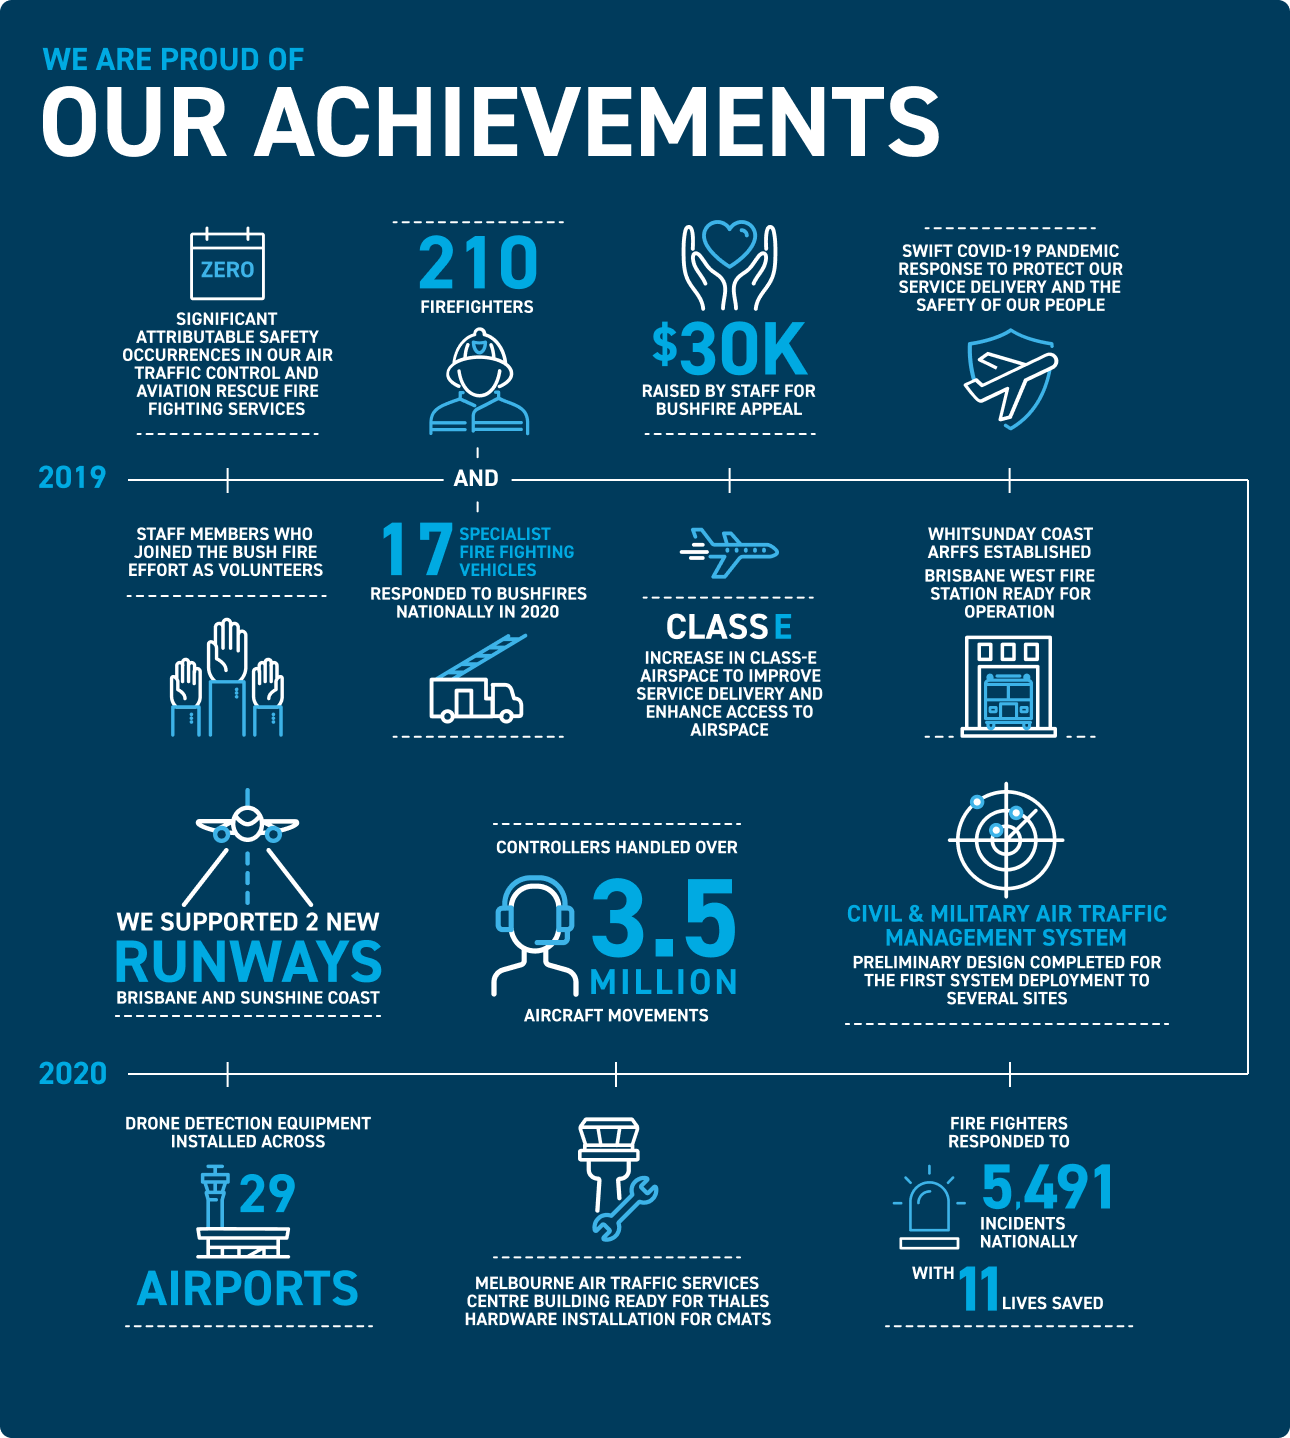 We Are Proud of Our Achievements